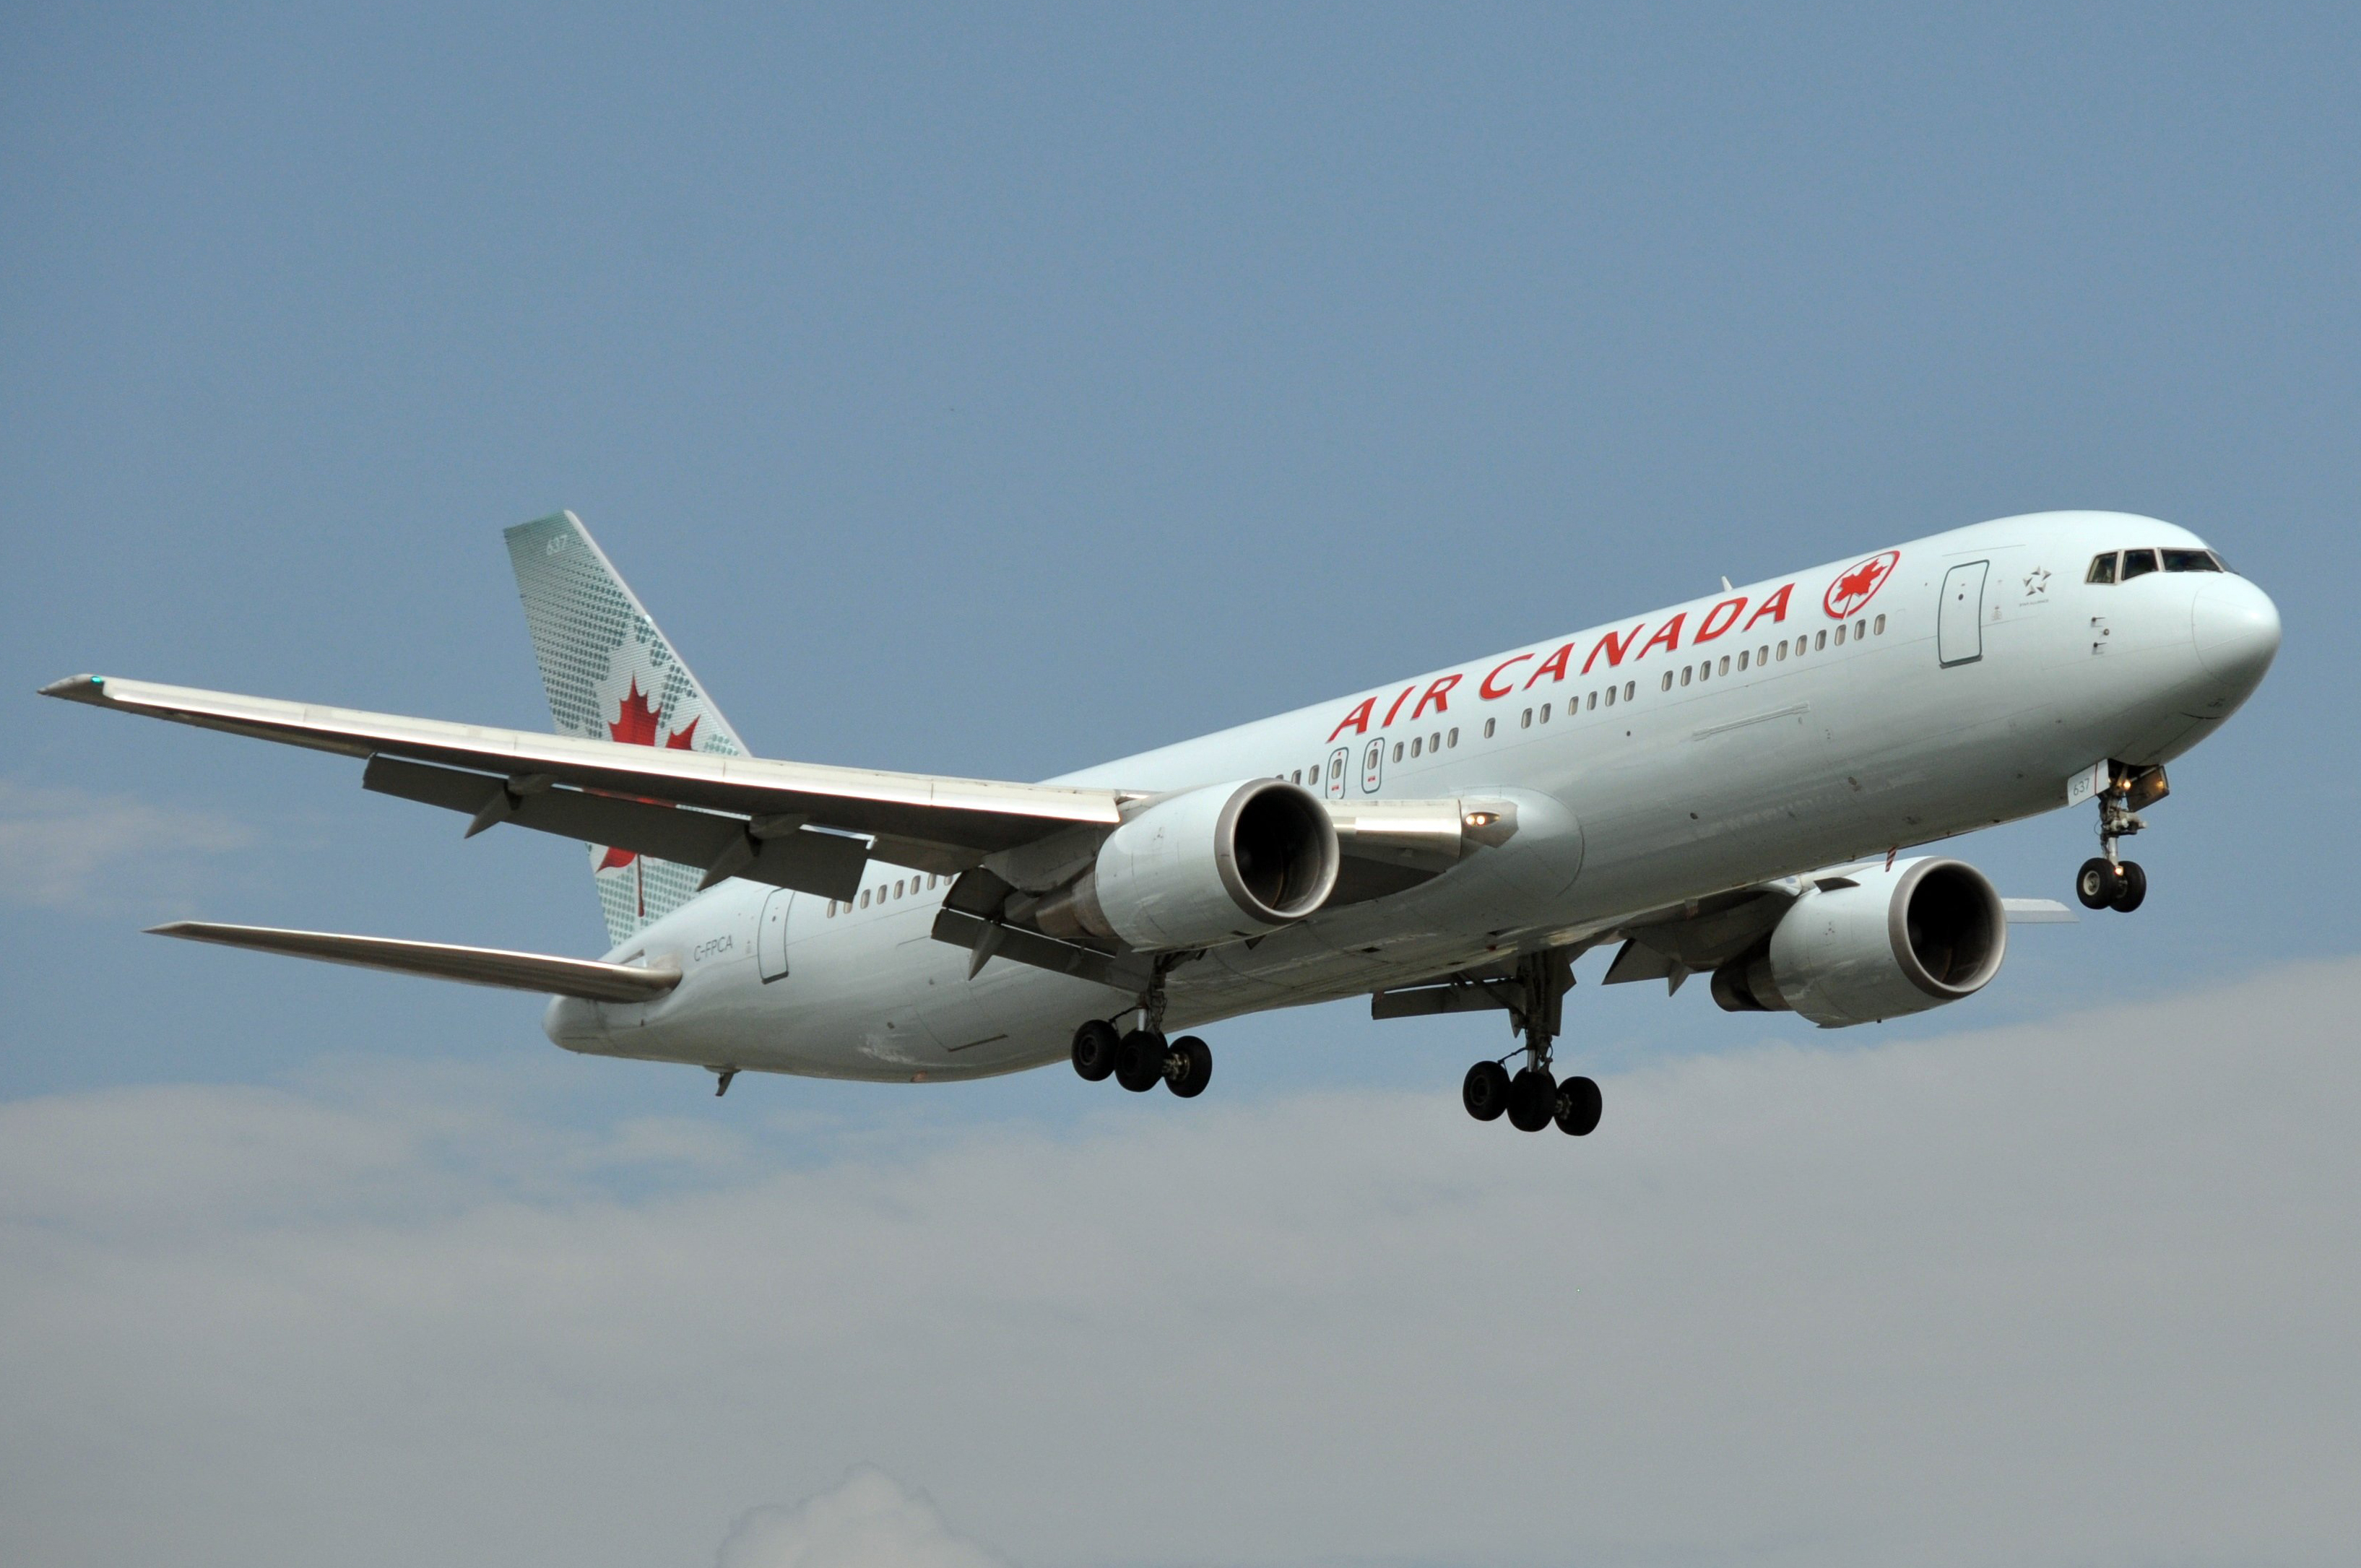 file air canada b767 300er c fpca montreal wikipedia. Black Bedroom Furniture Sets. Home Design Ideas